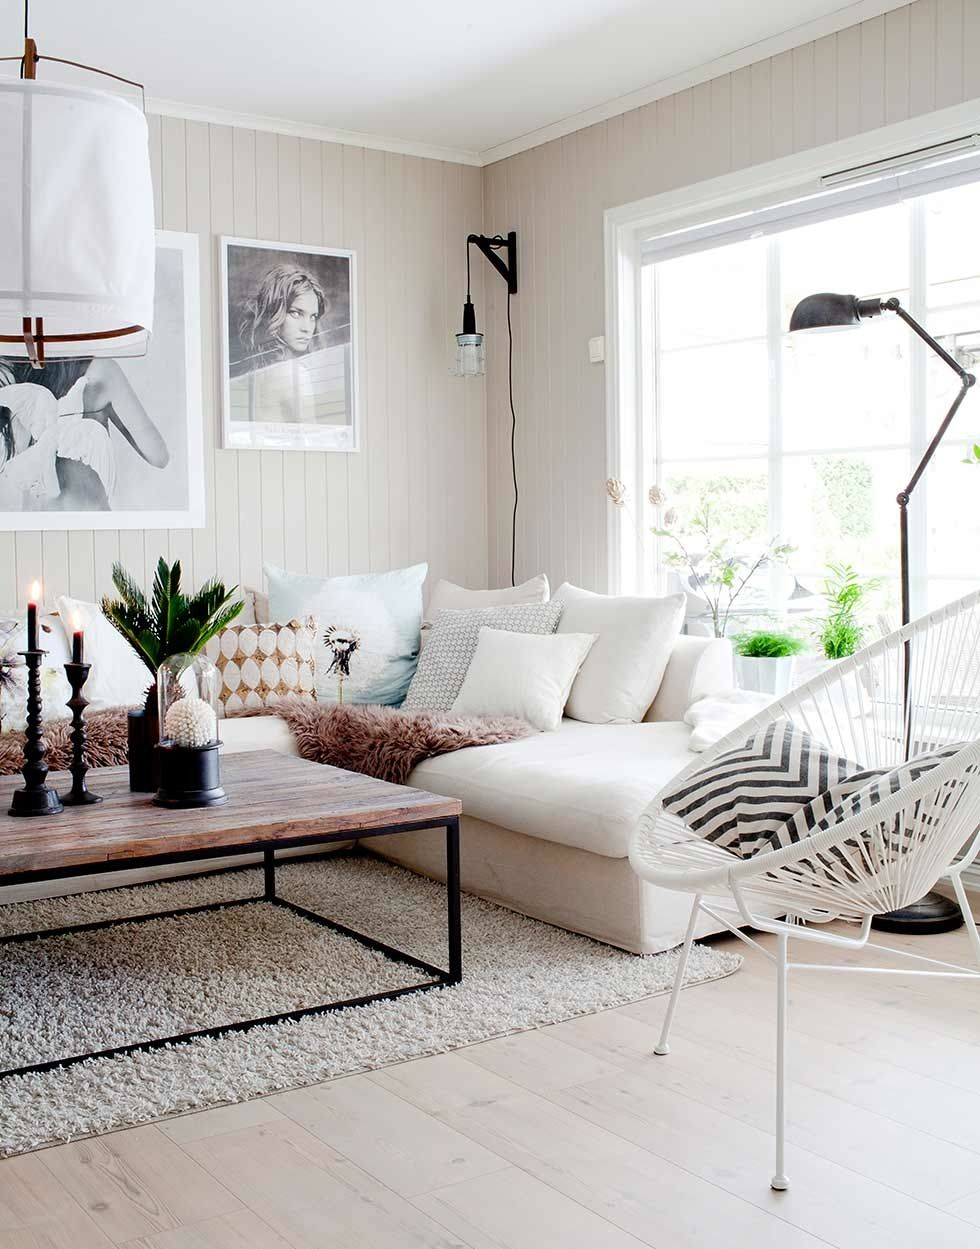 20+ Minimalist Living Room Ideas Of Your Space. Wohnzimmer Inspiration Moderne ...